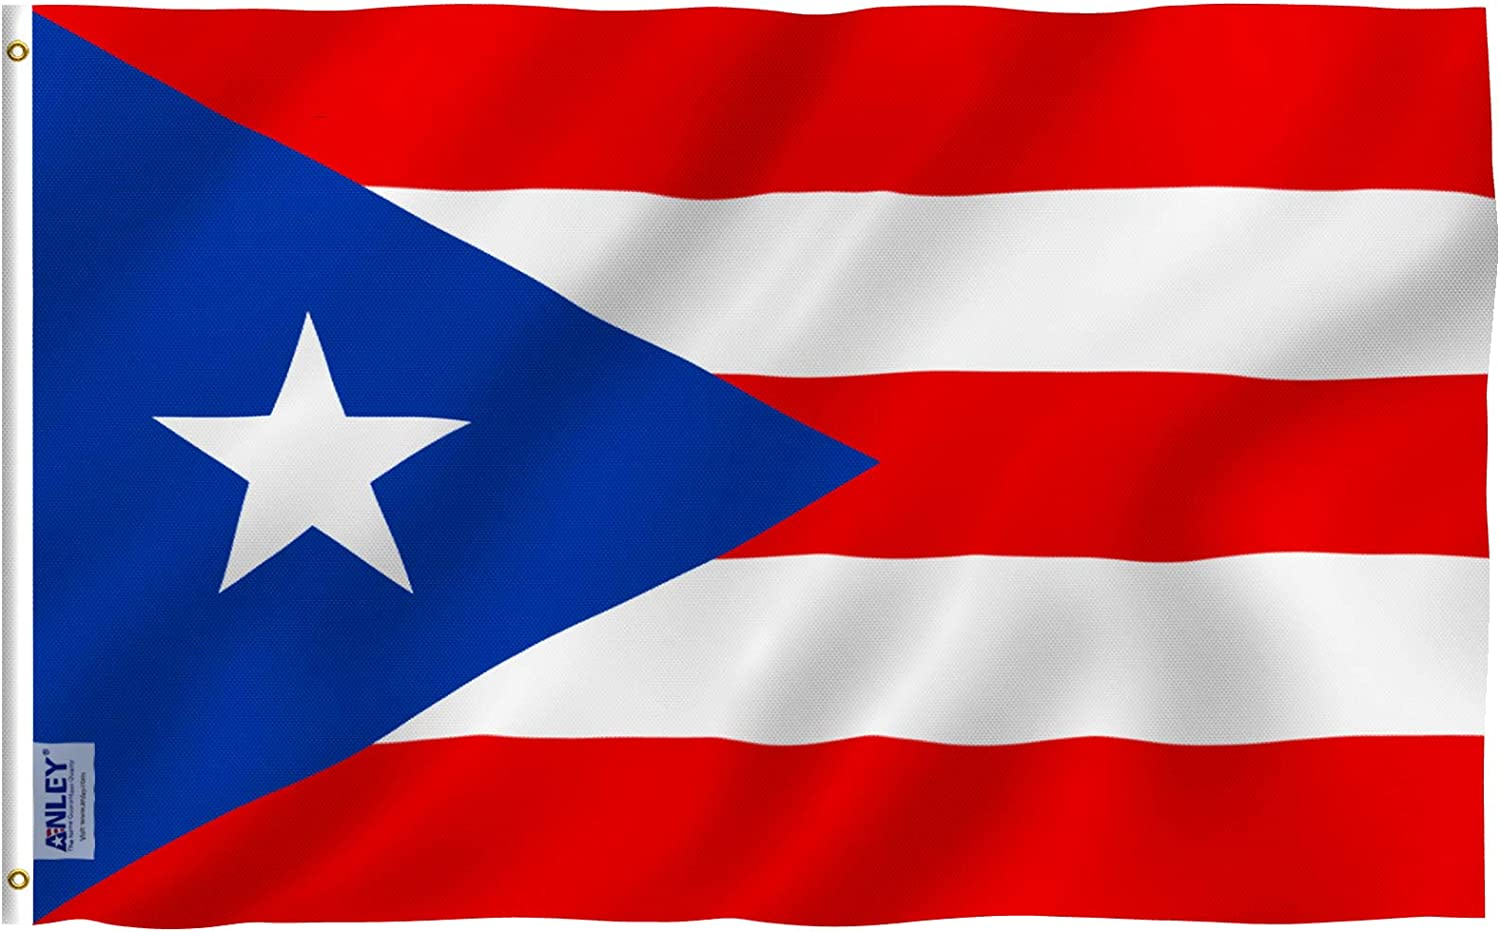 Anley Fly Breeze 3x5 Foot Puerto Rico Flag - Vivid Color and UV Fade Resistant - Canvas Header and Double Stitched - Puerto Rican National Flags Polyester with Brass Grommets 3 X 5 Ft